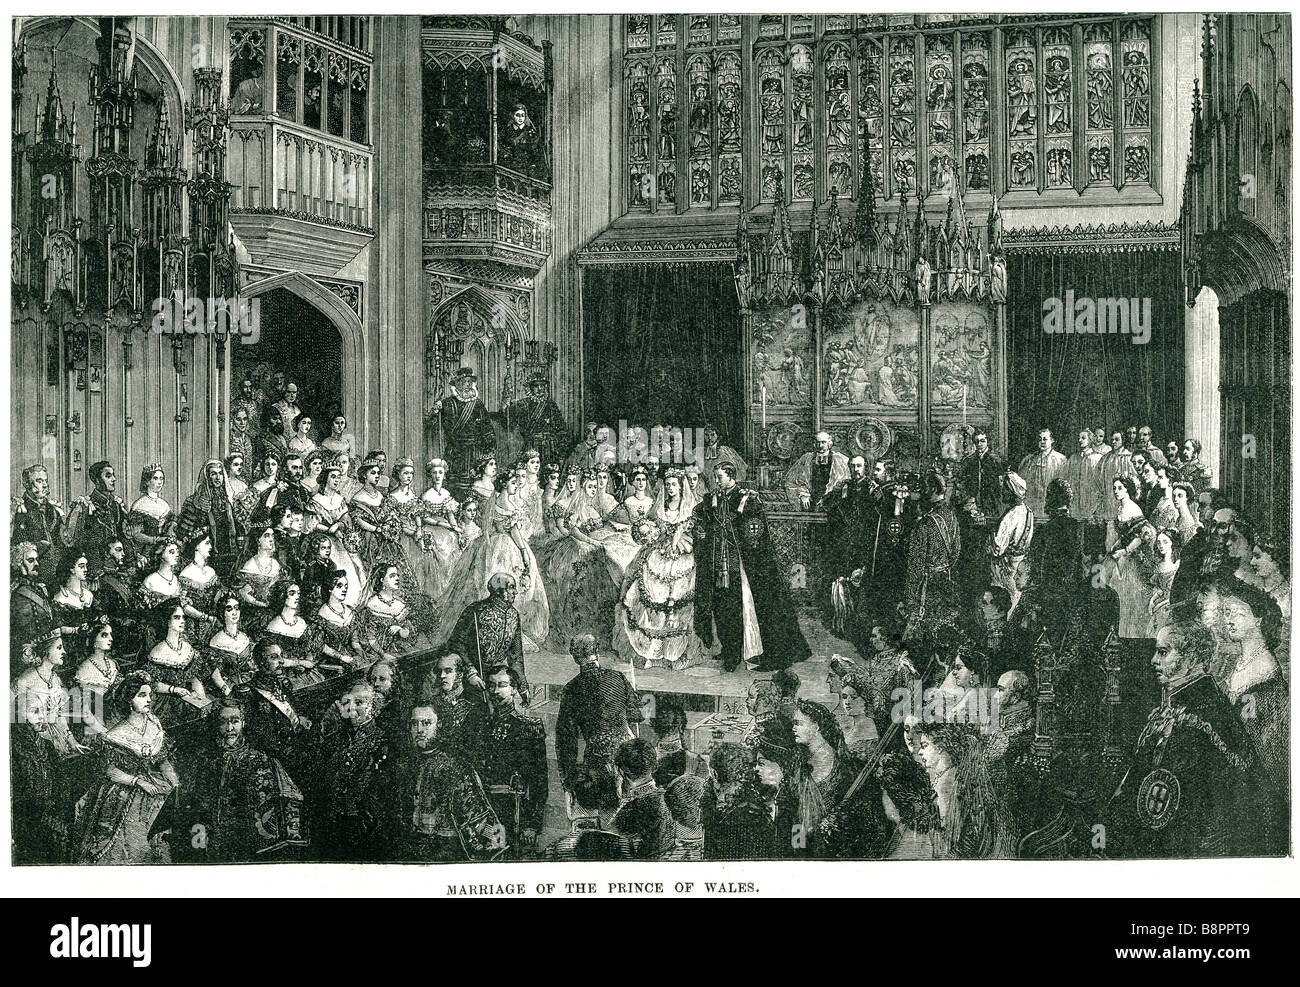 marriage the prince of wales Edward VII 1863 King United Kingdom British Dominions Emperor of India Stock Photo